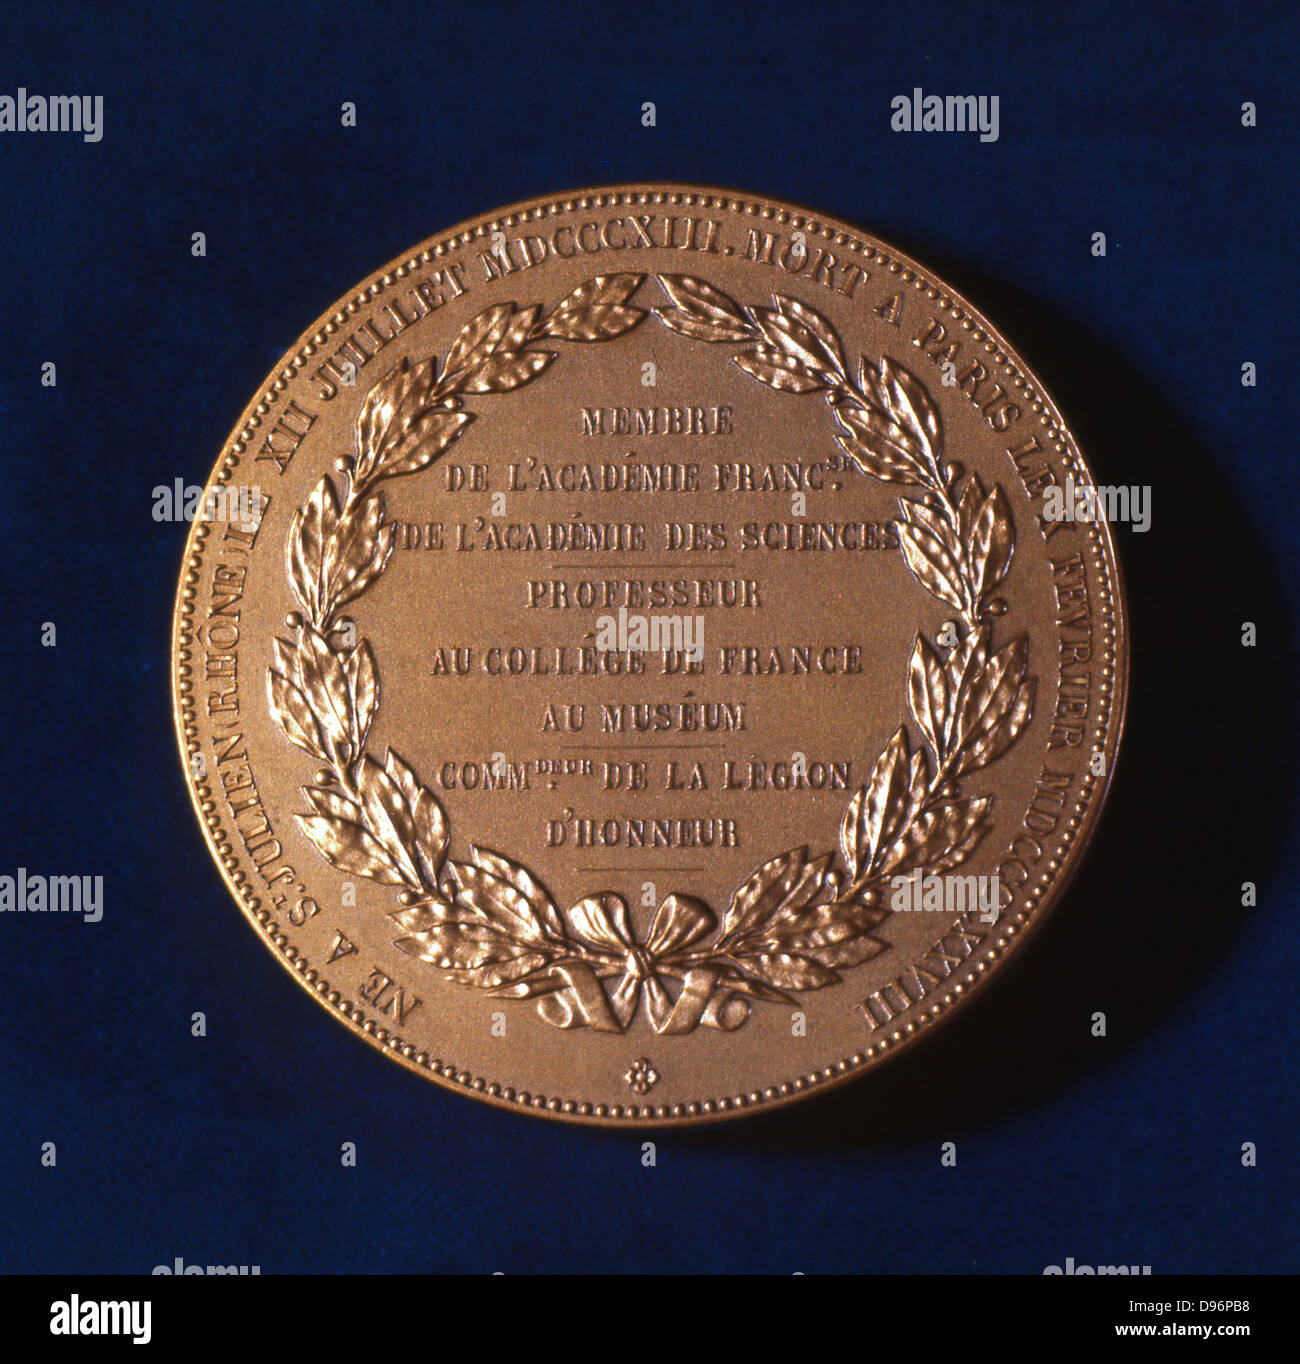 Medal commemorating Claude Bernard, French physiologist Bernard (1813-1878) investigated the liver, discovering - Stock Image